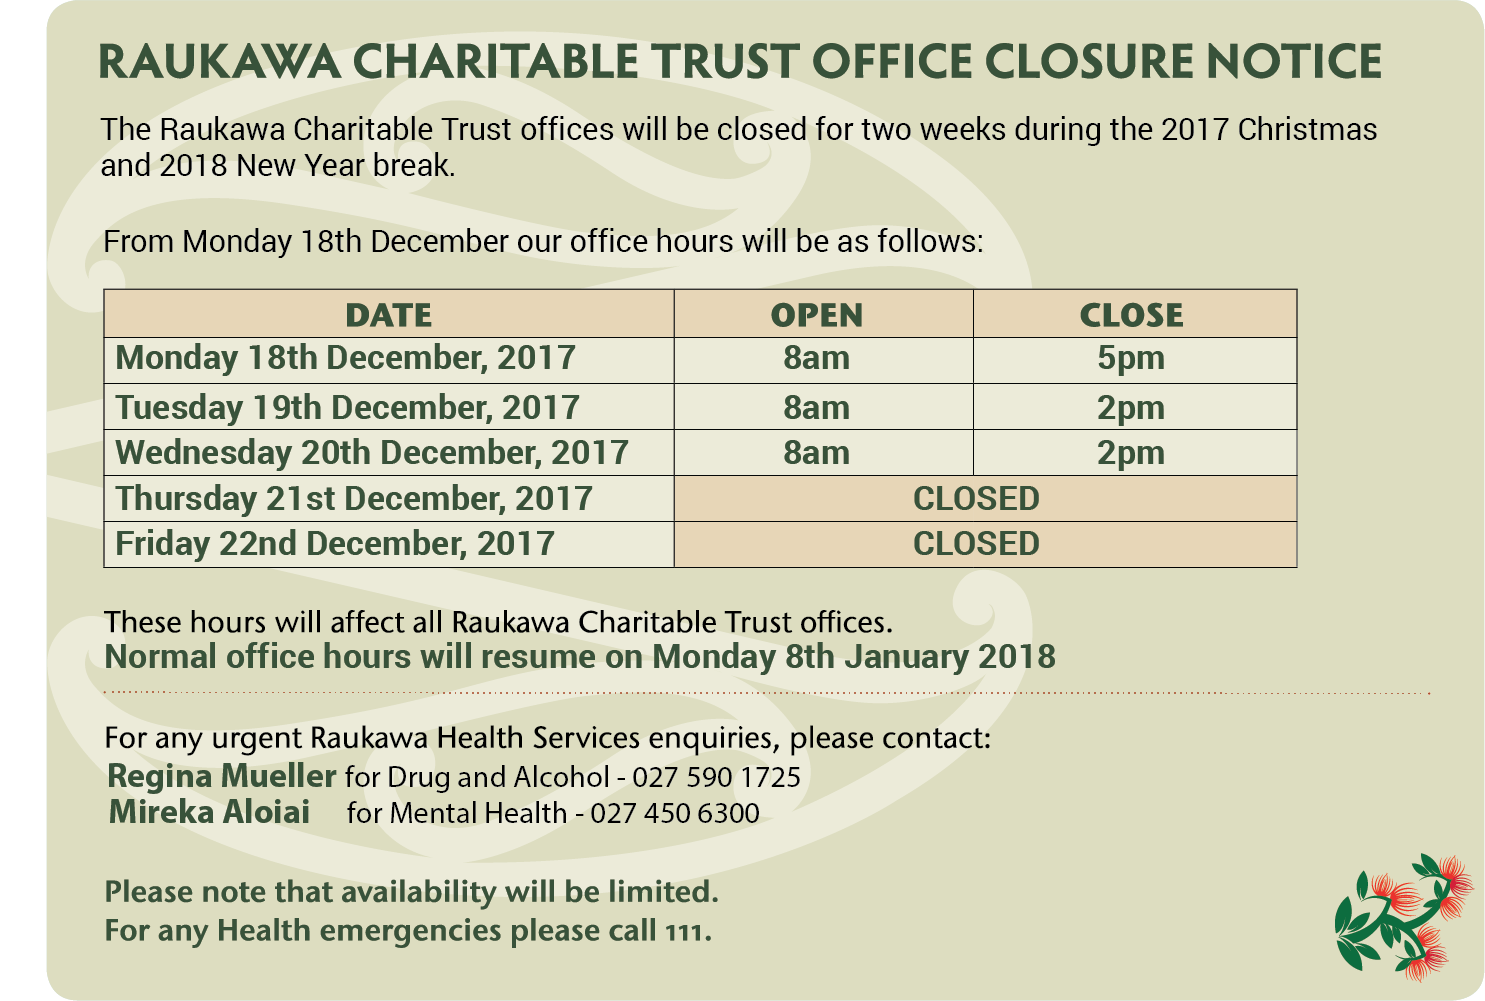 for more information about our office holiday closure before the period commences please contact us on 0800 raukawa 0800 728 5292